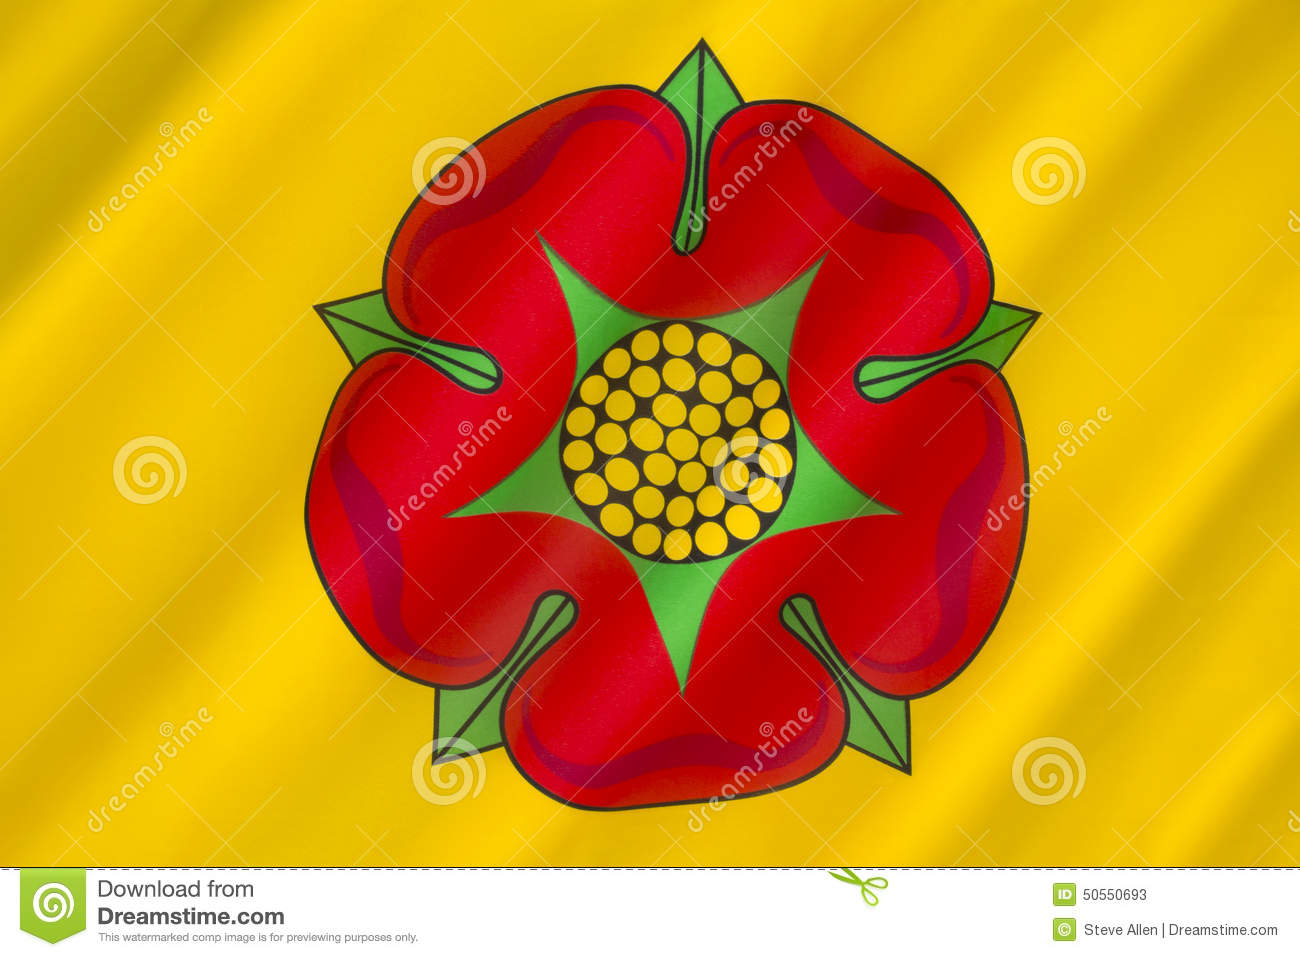 Flag gallery british county flags - Flag Of Lancashire United Kingdom Stock Photos